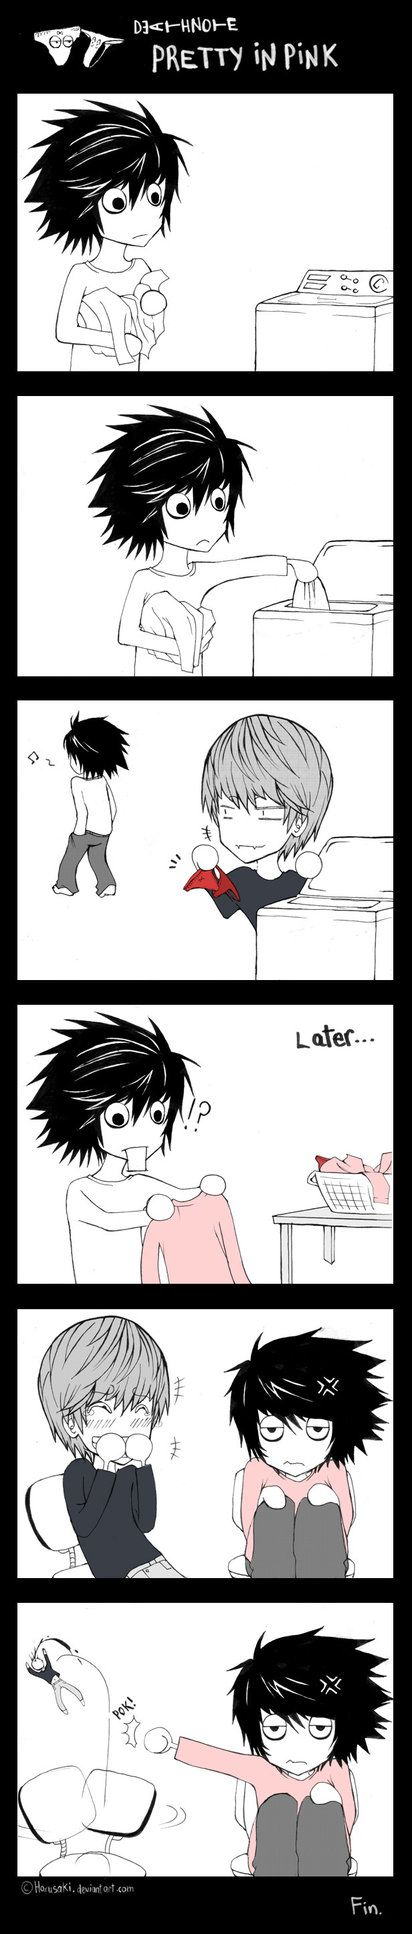 Funny Underwear Meme : I hope those are misa s underwear and not light that